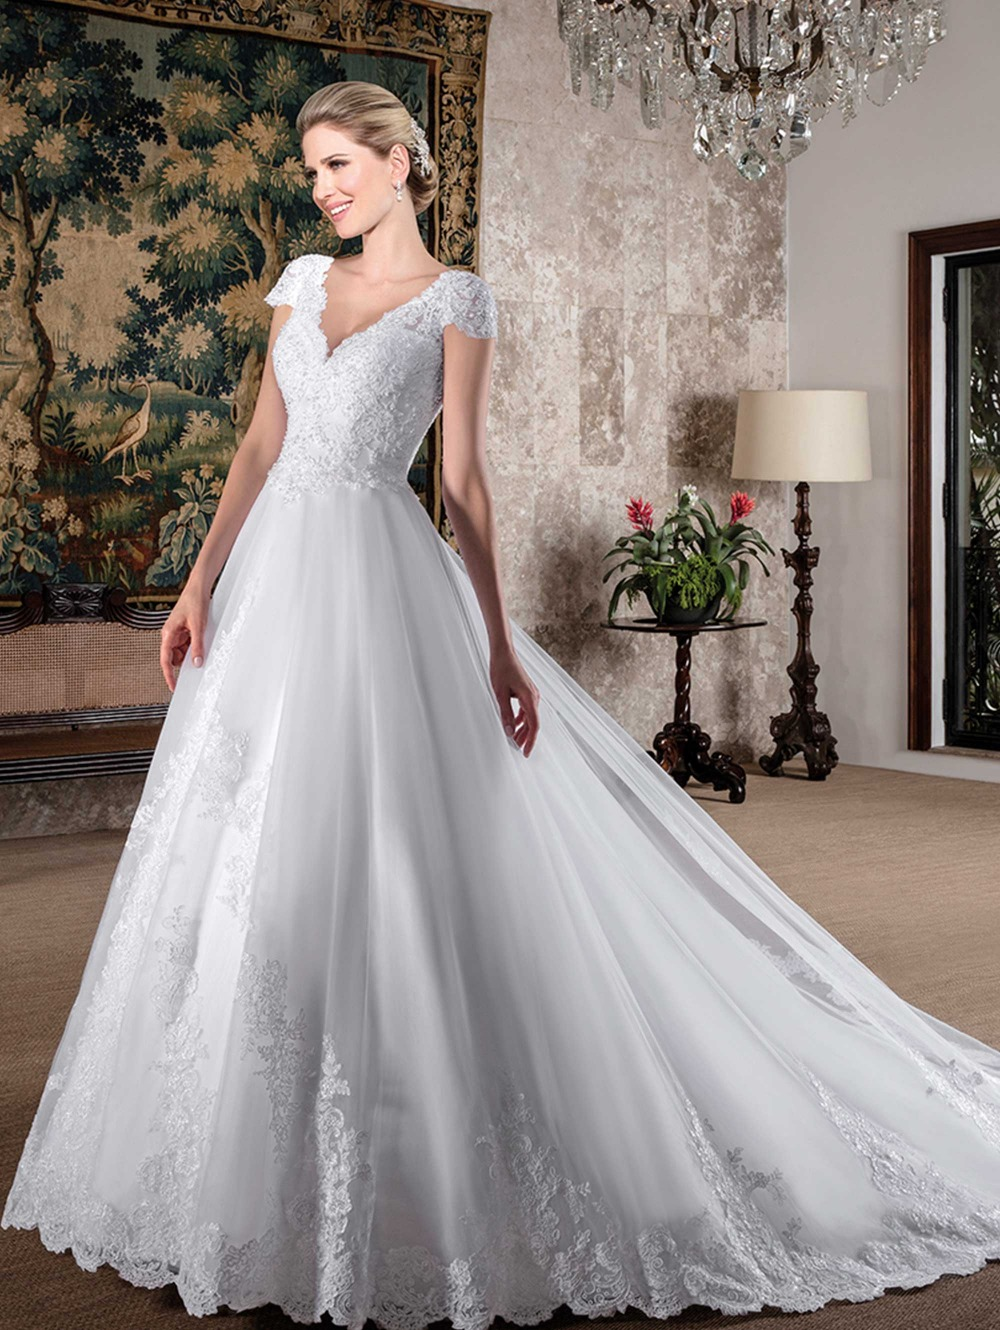 Compare Prices on Lace V Neck Wedding Gowns- Online Shopping/Buy ...